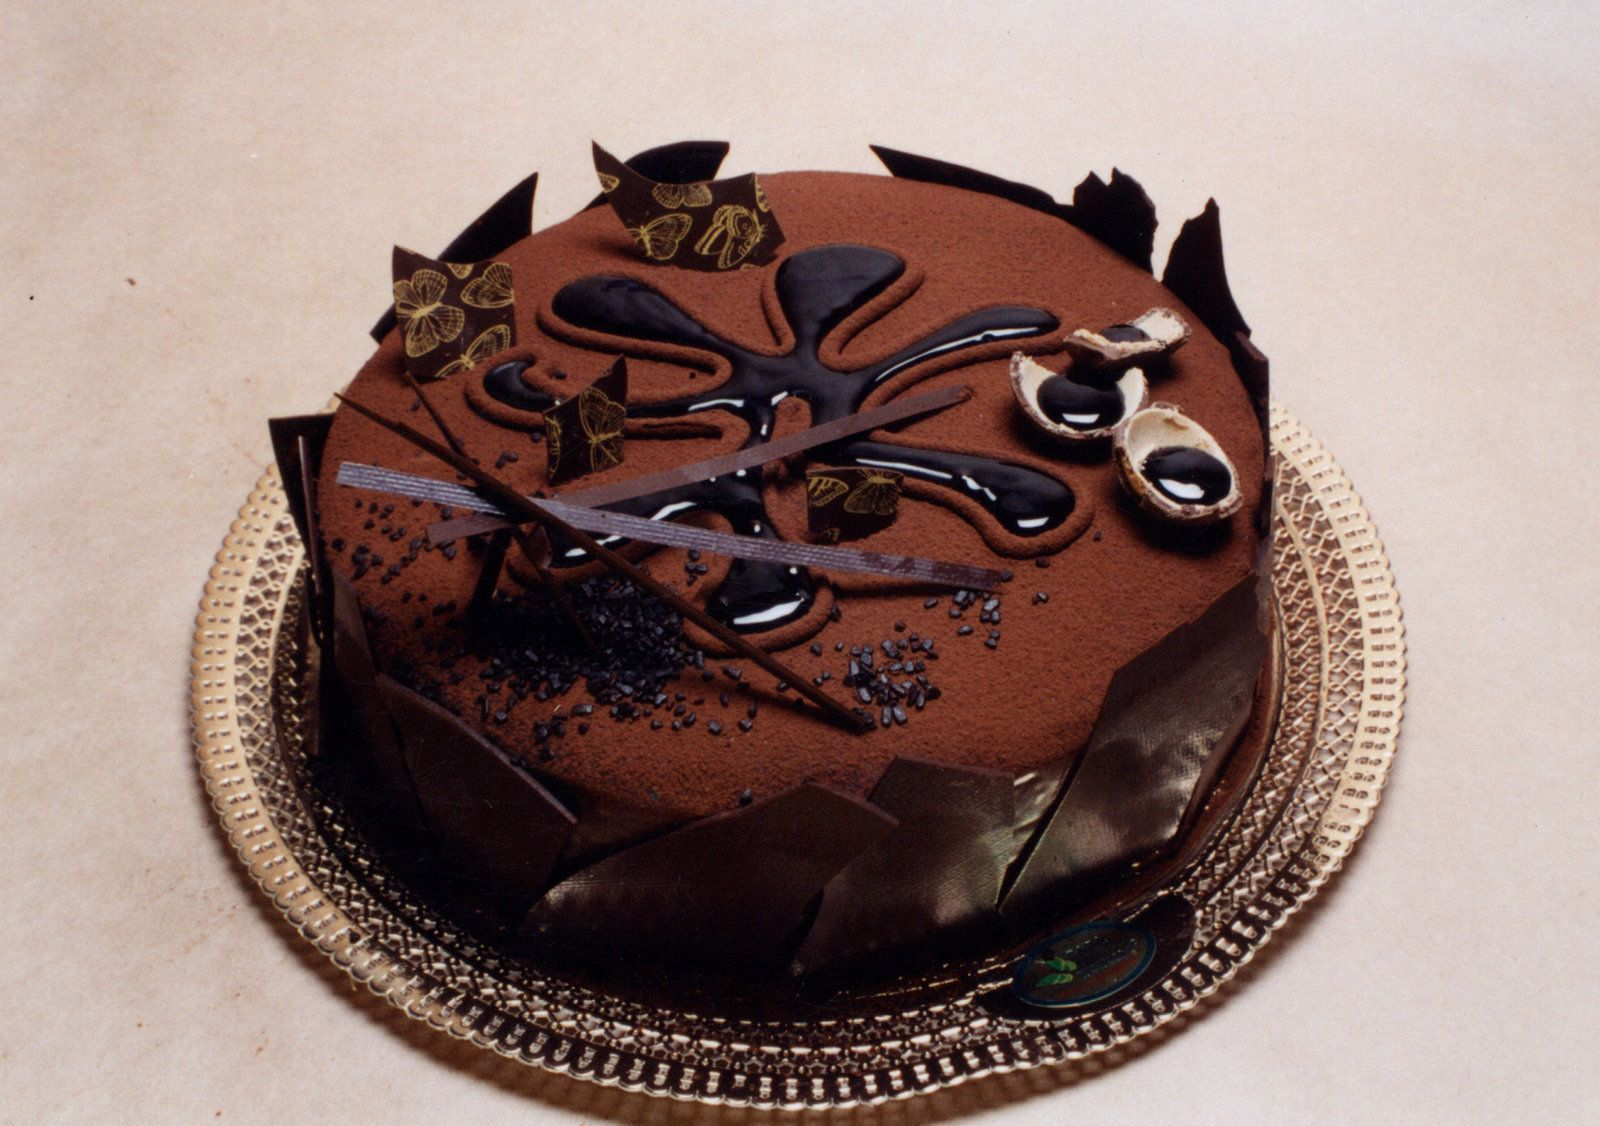 Décoration De Gateau Au Chocolat Dcoration De Gateau Au Chocolat Stunning Dcoration De